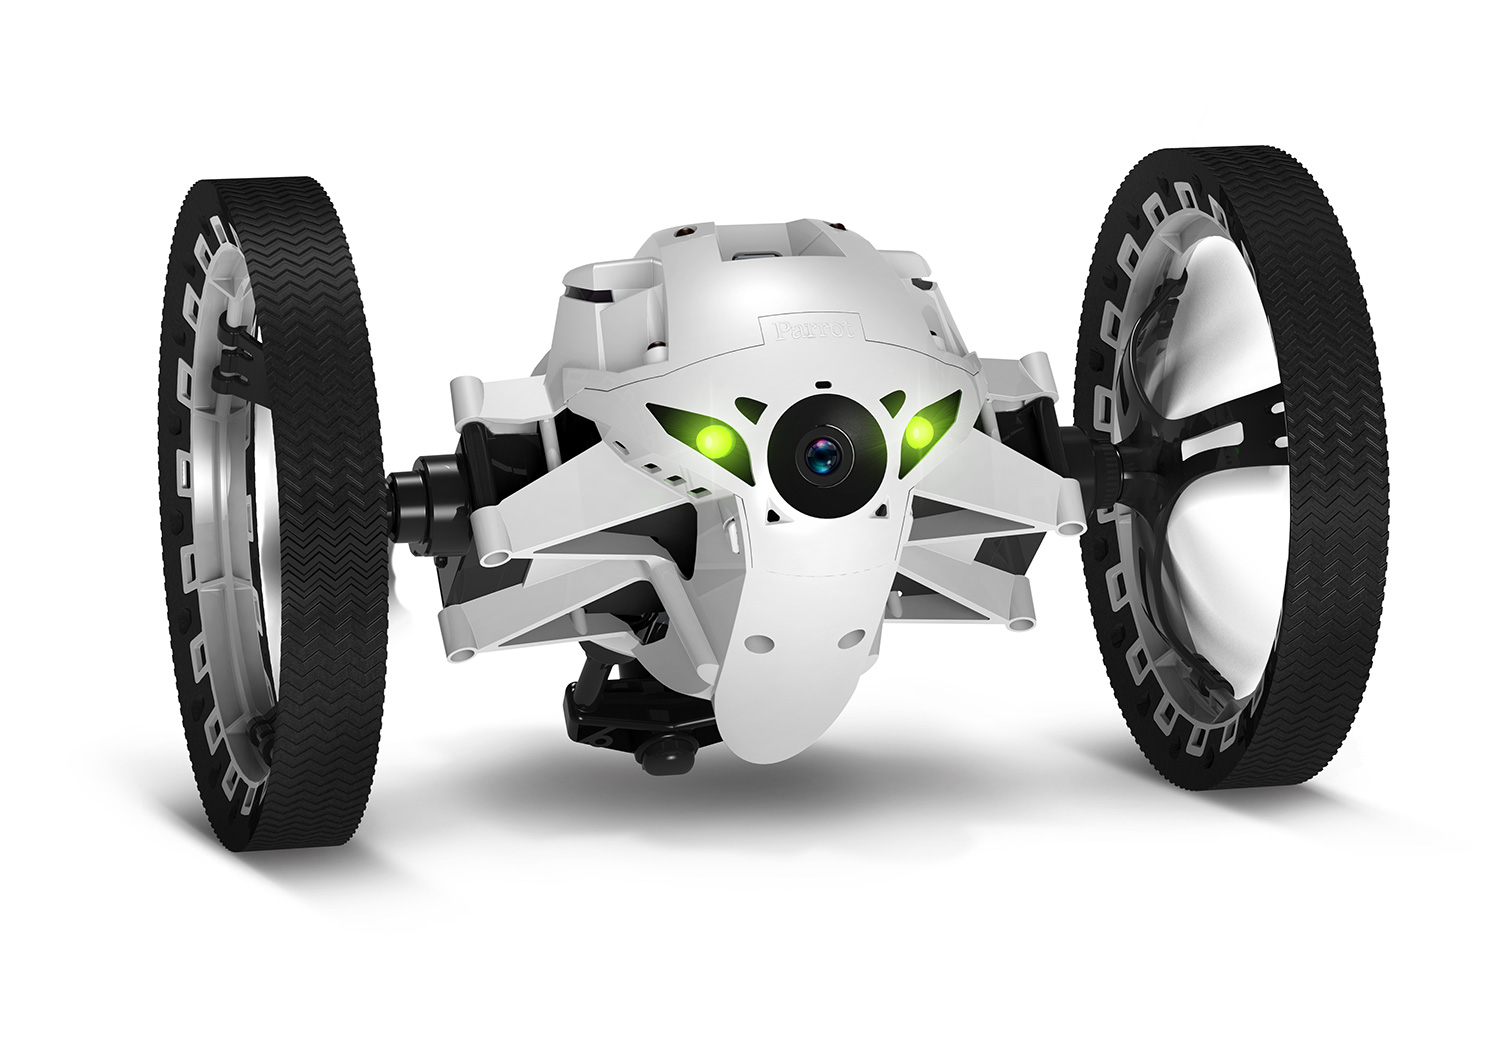 sumo drone with Jumping Sumo Parrot Prix Sortie on Jumping Night Drione together with Parrot Jumping Sumo Review also 10 3d Printed Drones 84247 besides Fat Stormtrooper Costume Cosplay Sumo besides Technology 34858171.